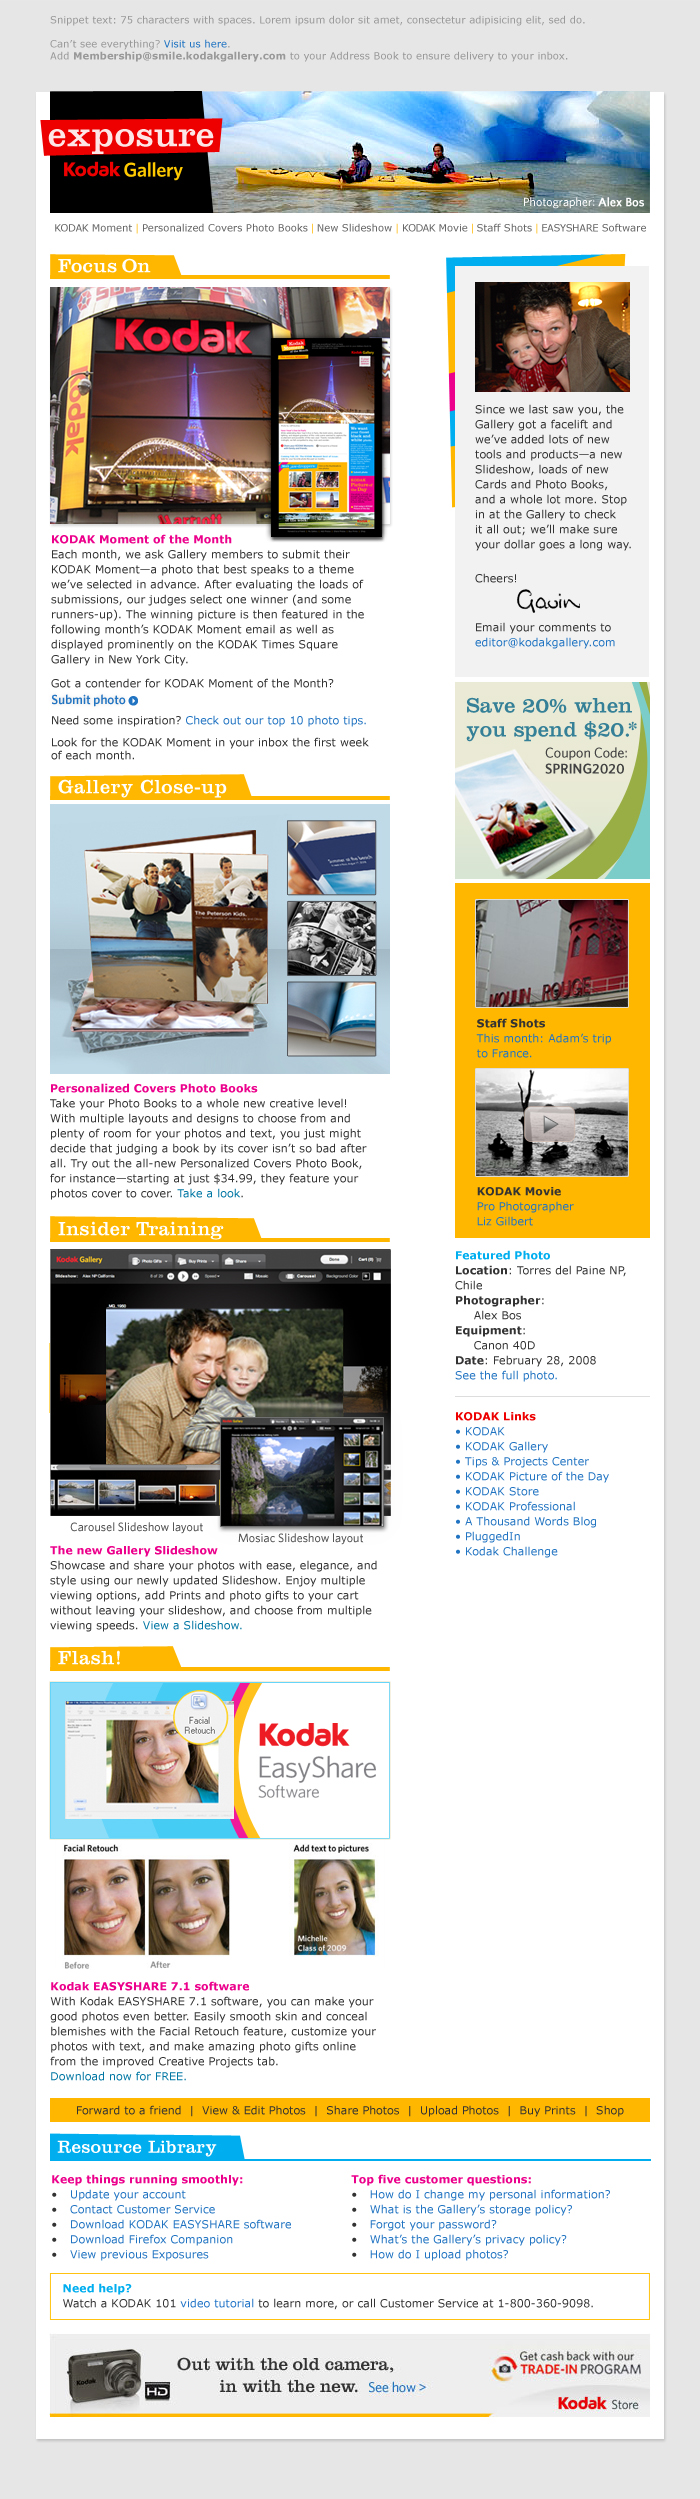 Boe Gatiss - Exposure Newsletter for Kodak Gallery